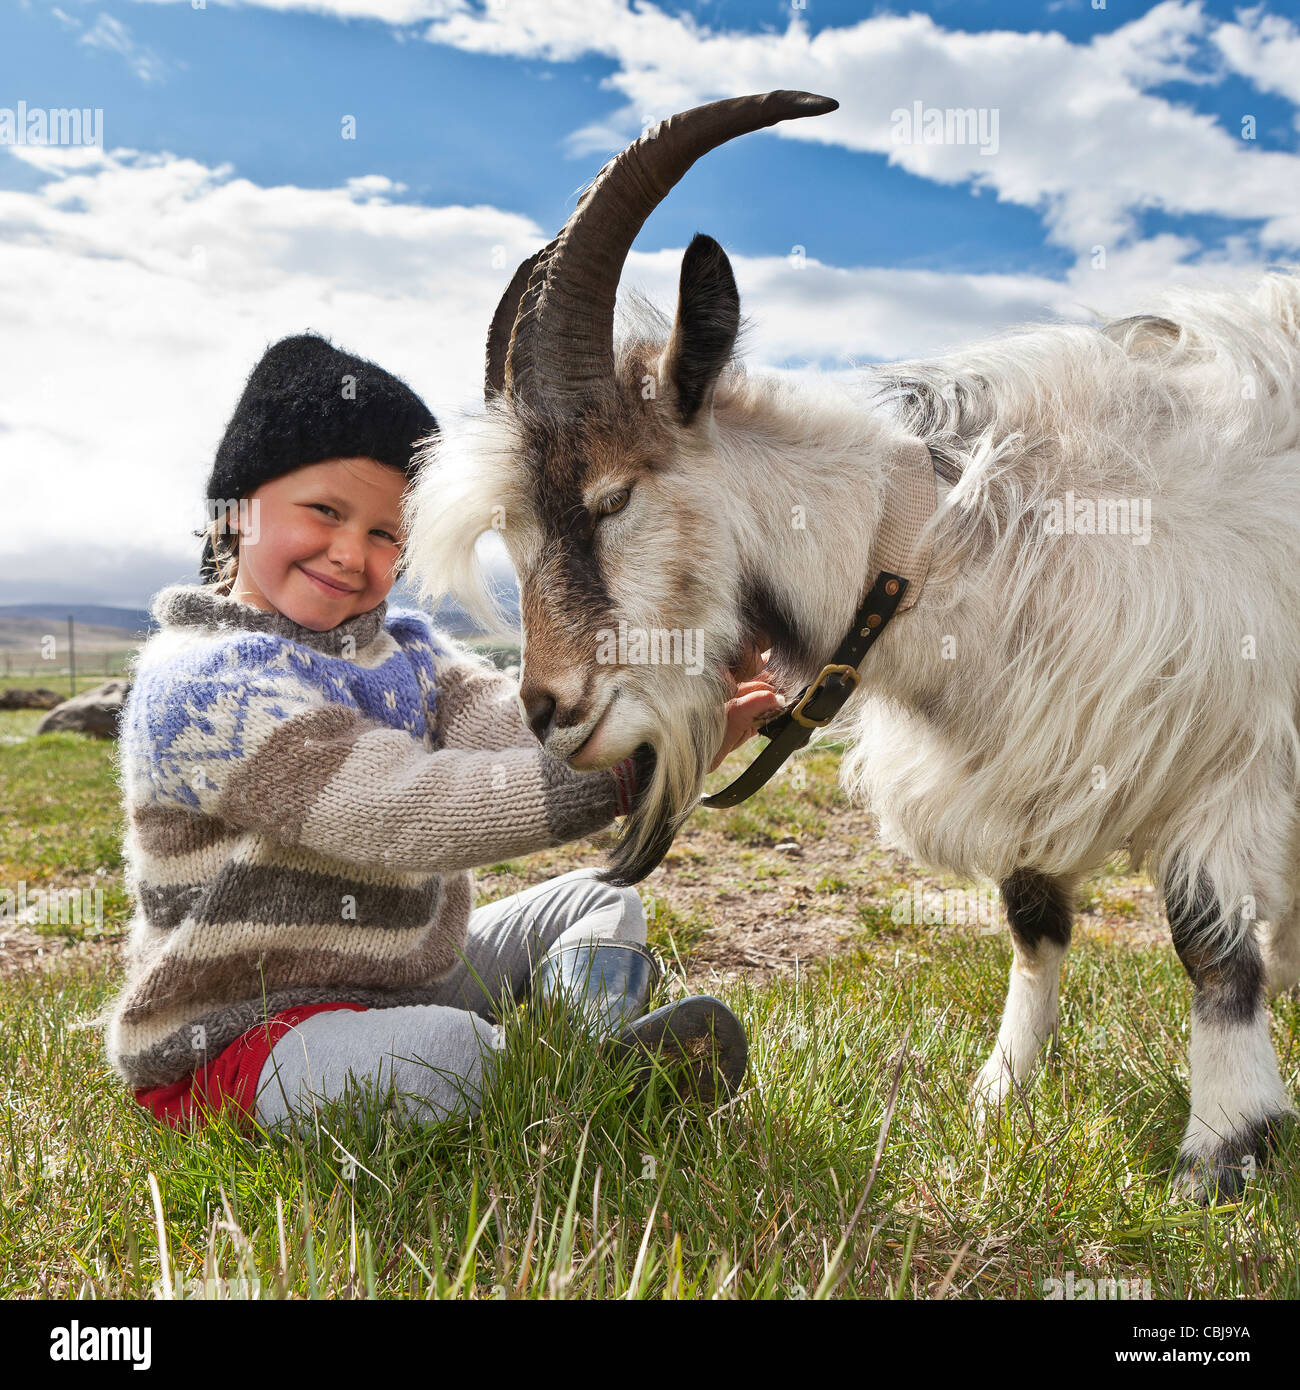 Girl with goat, Goat farm, Iceland - Stock Image